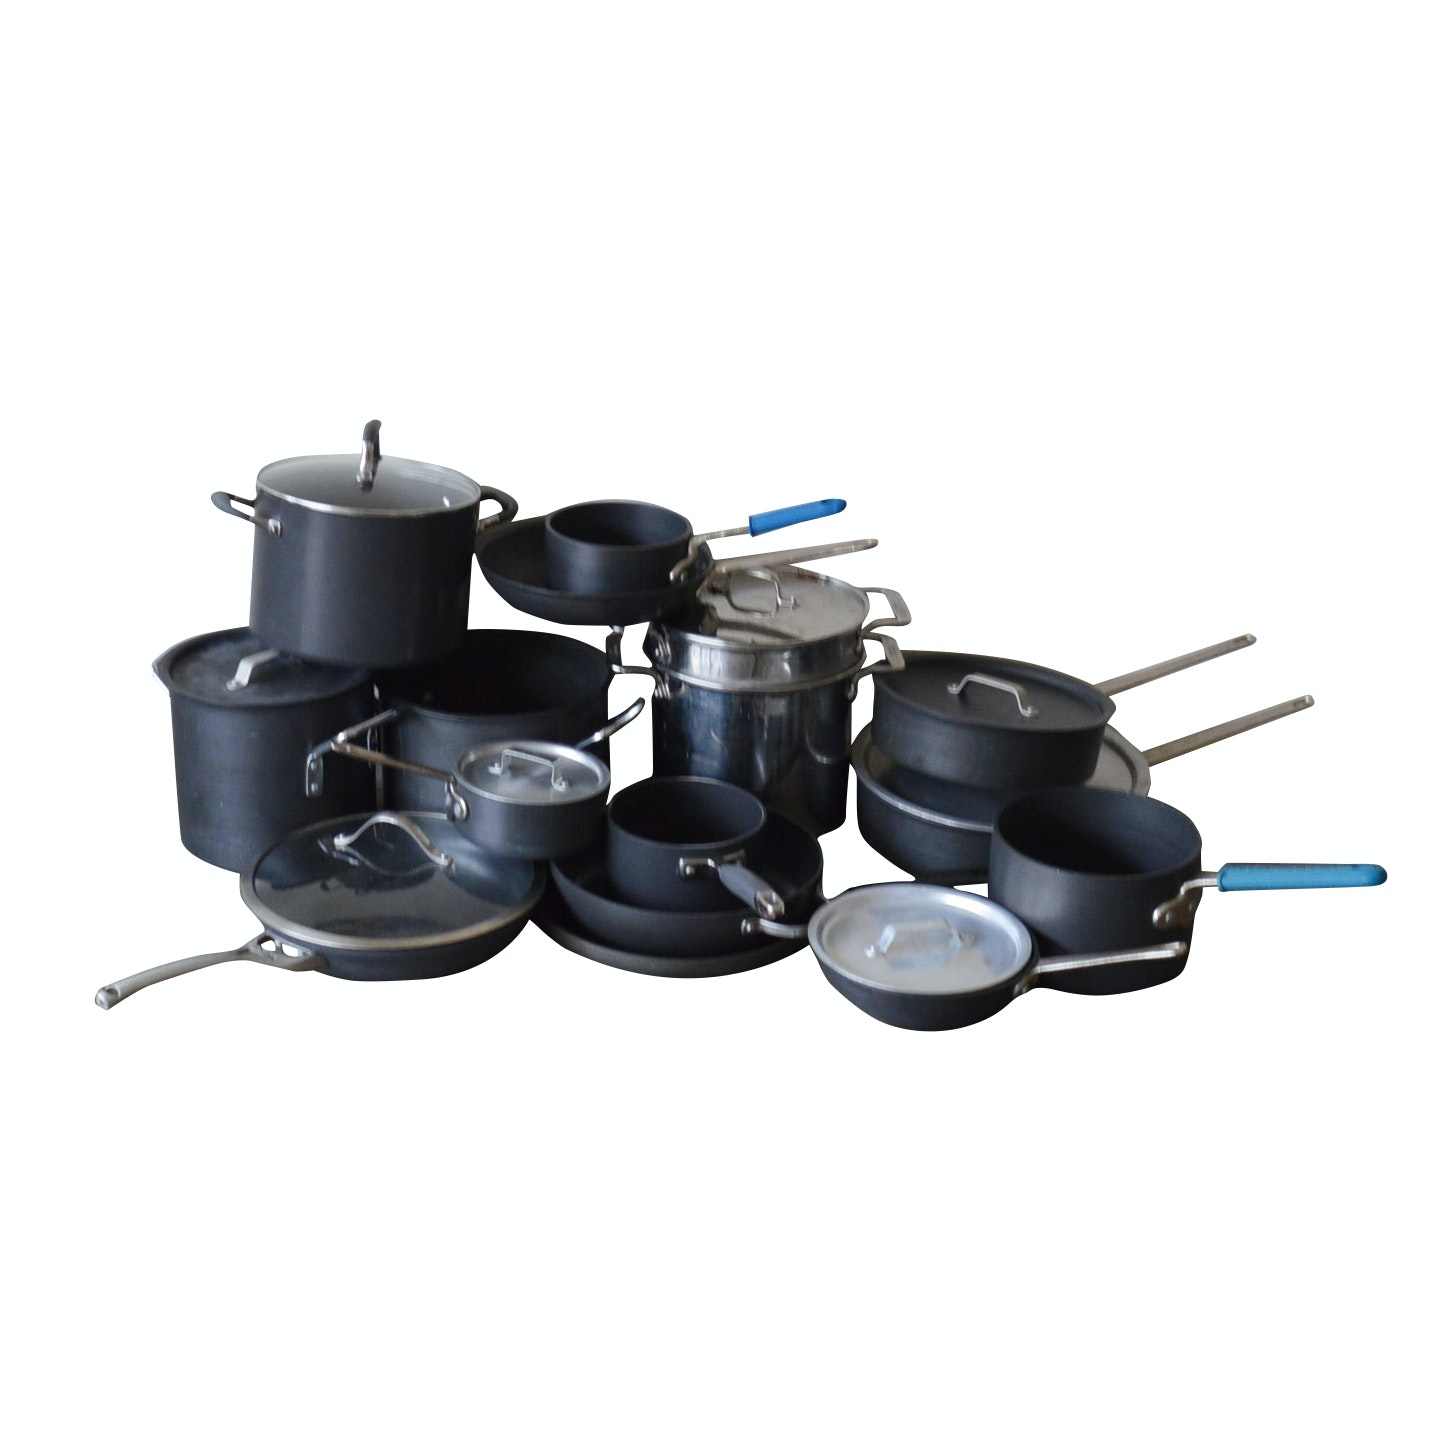 Collection of Calphalon, All Clad and More Pots and Pans